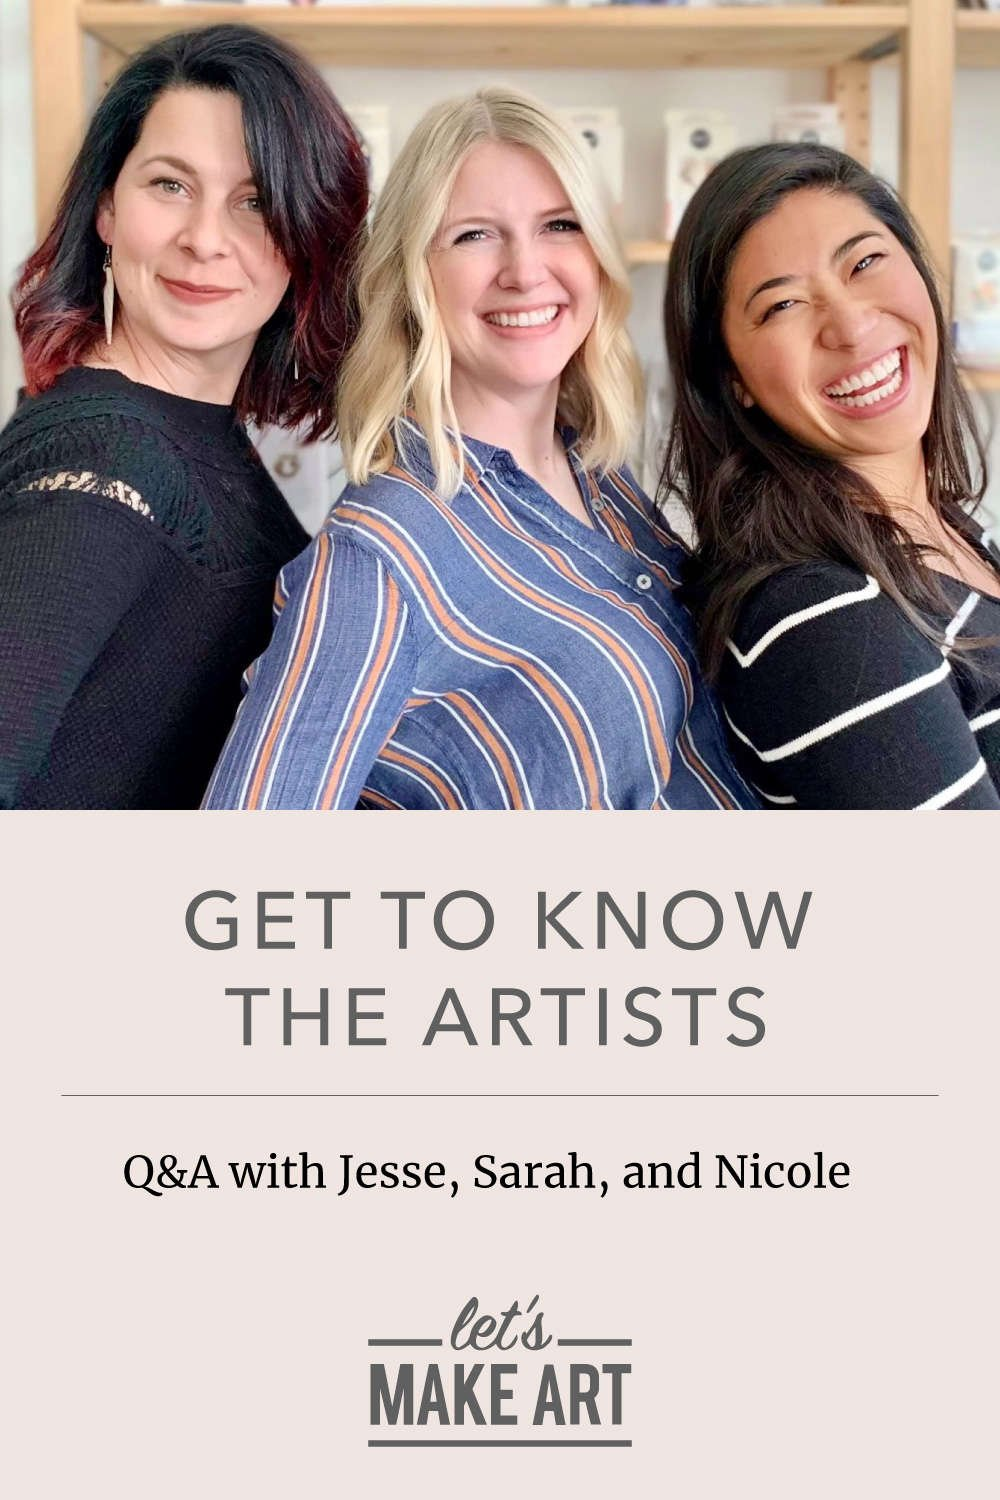 """photo of Jesse, Sarah, and Nicole smiling together with text that says """"Get to know the artists, Q&A with Jesse, Sarah, and Nicole"""""""